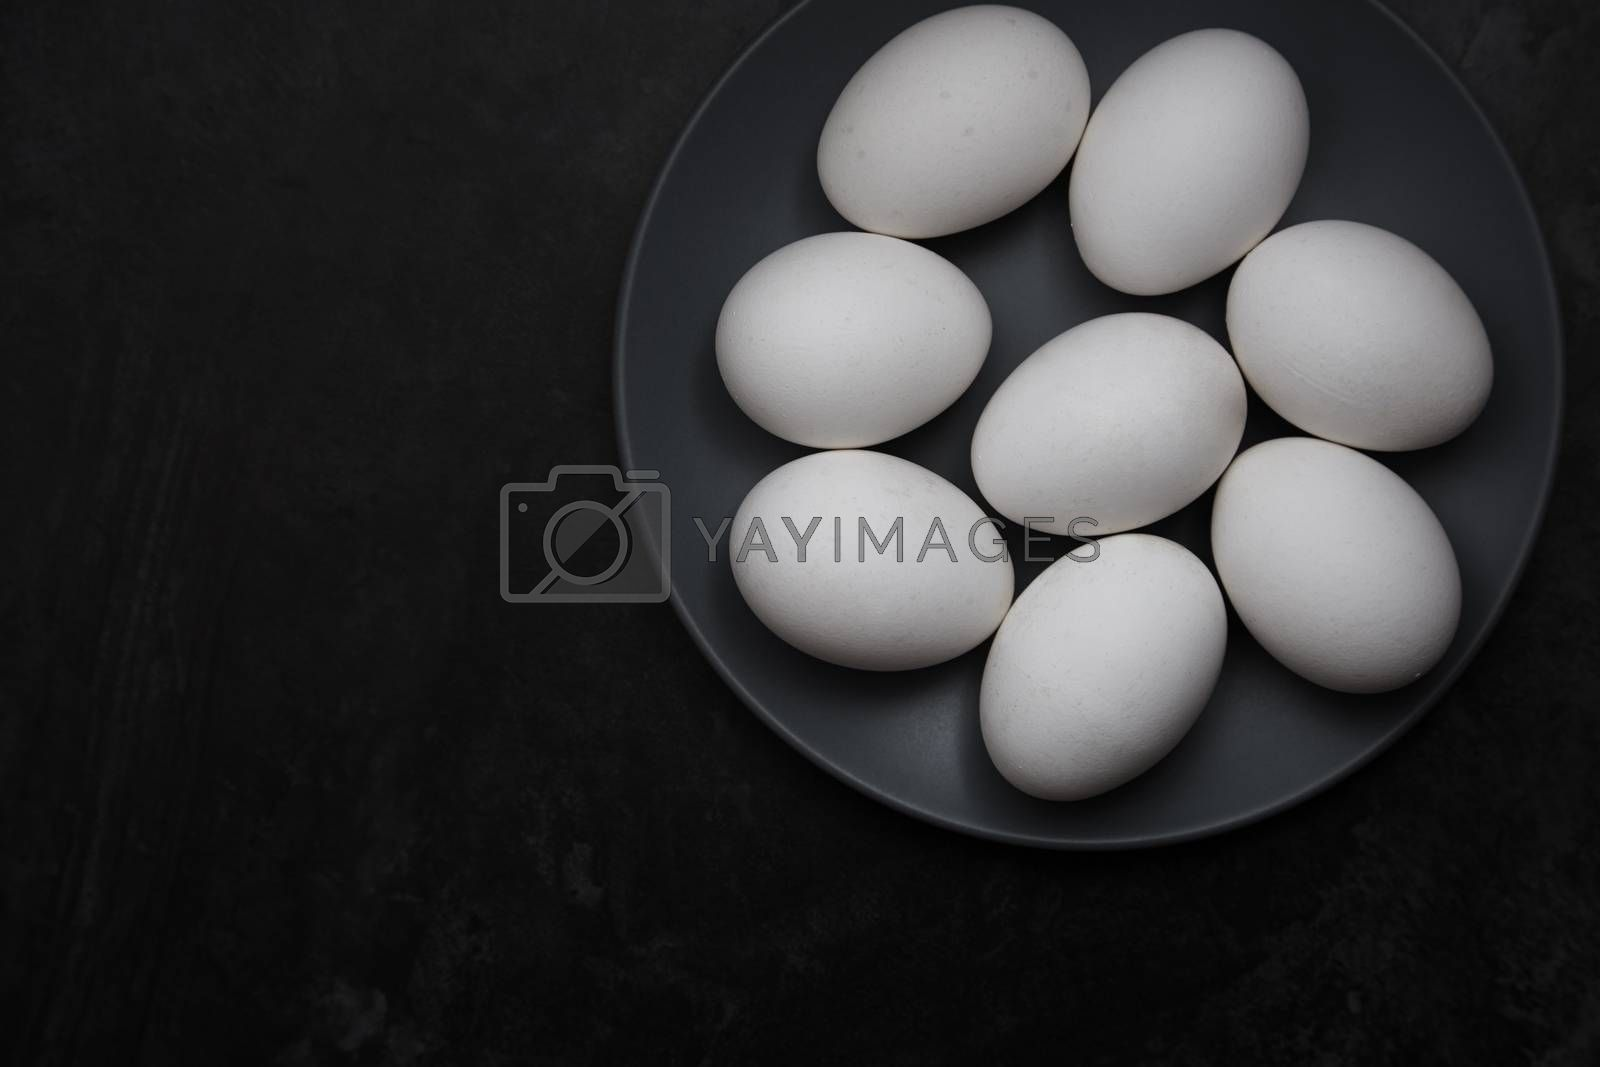 Chicken eggs on a plate. View from above